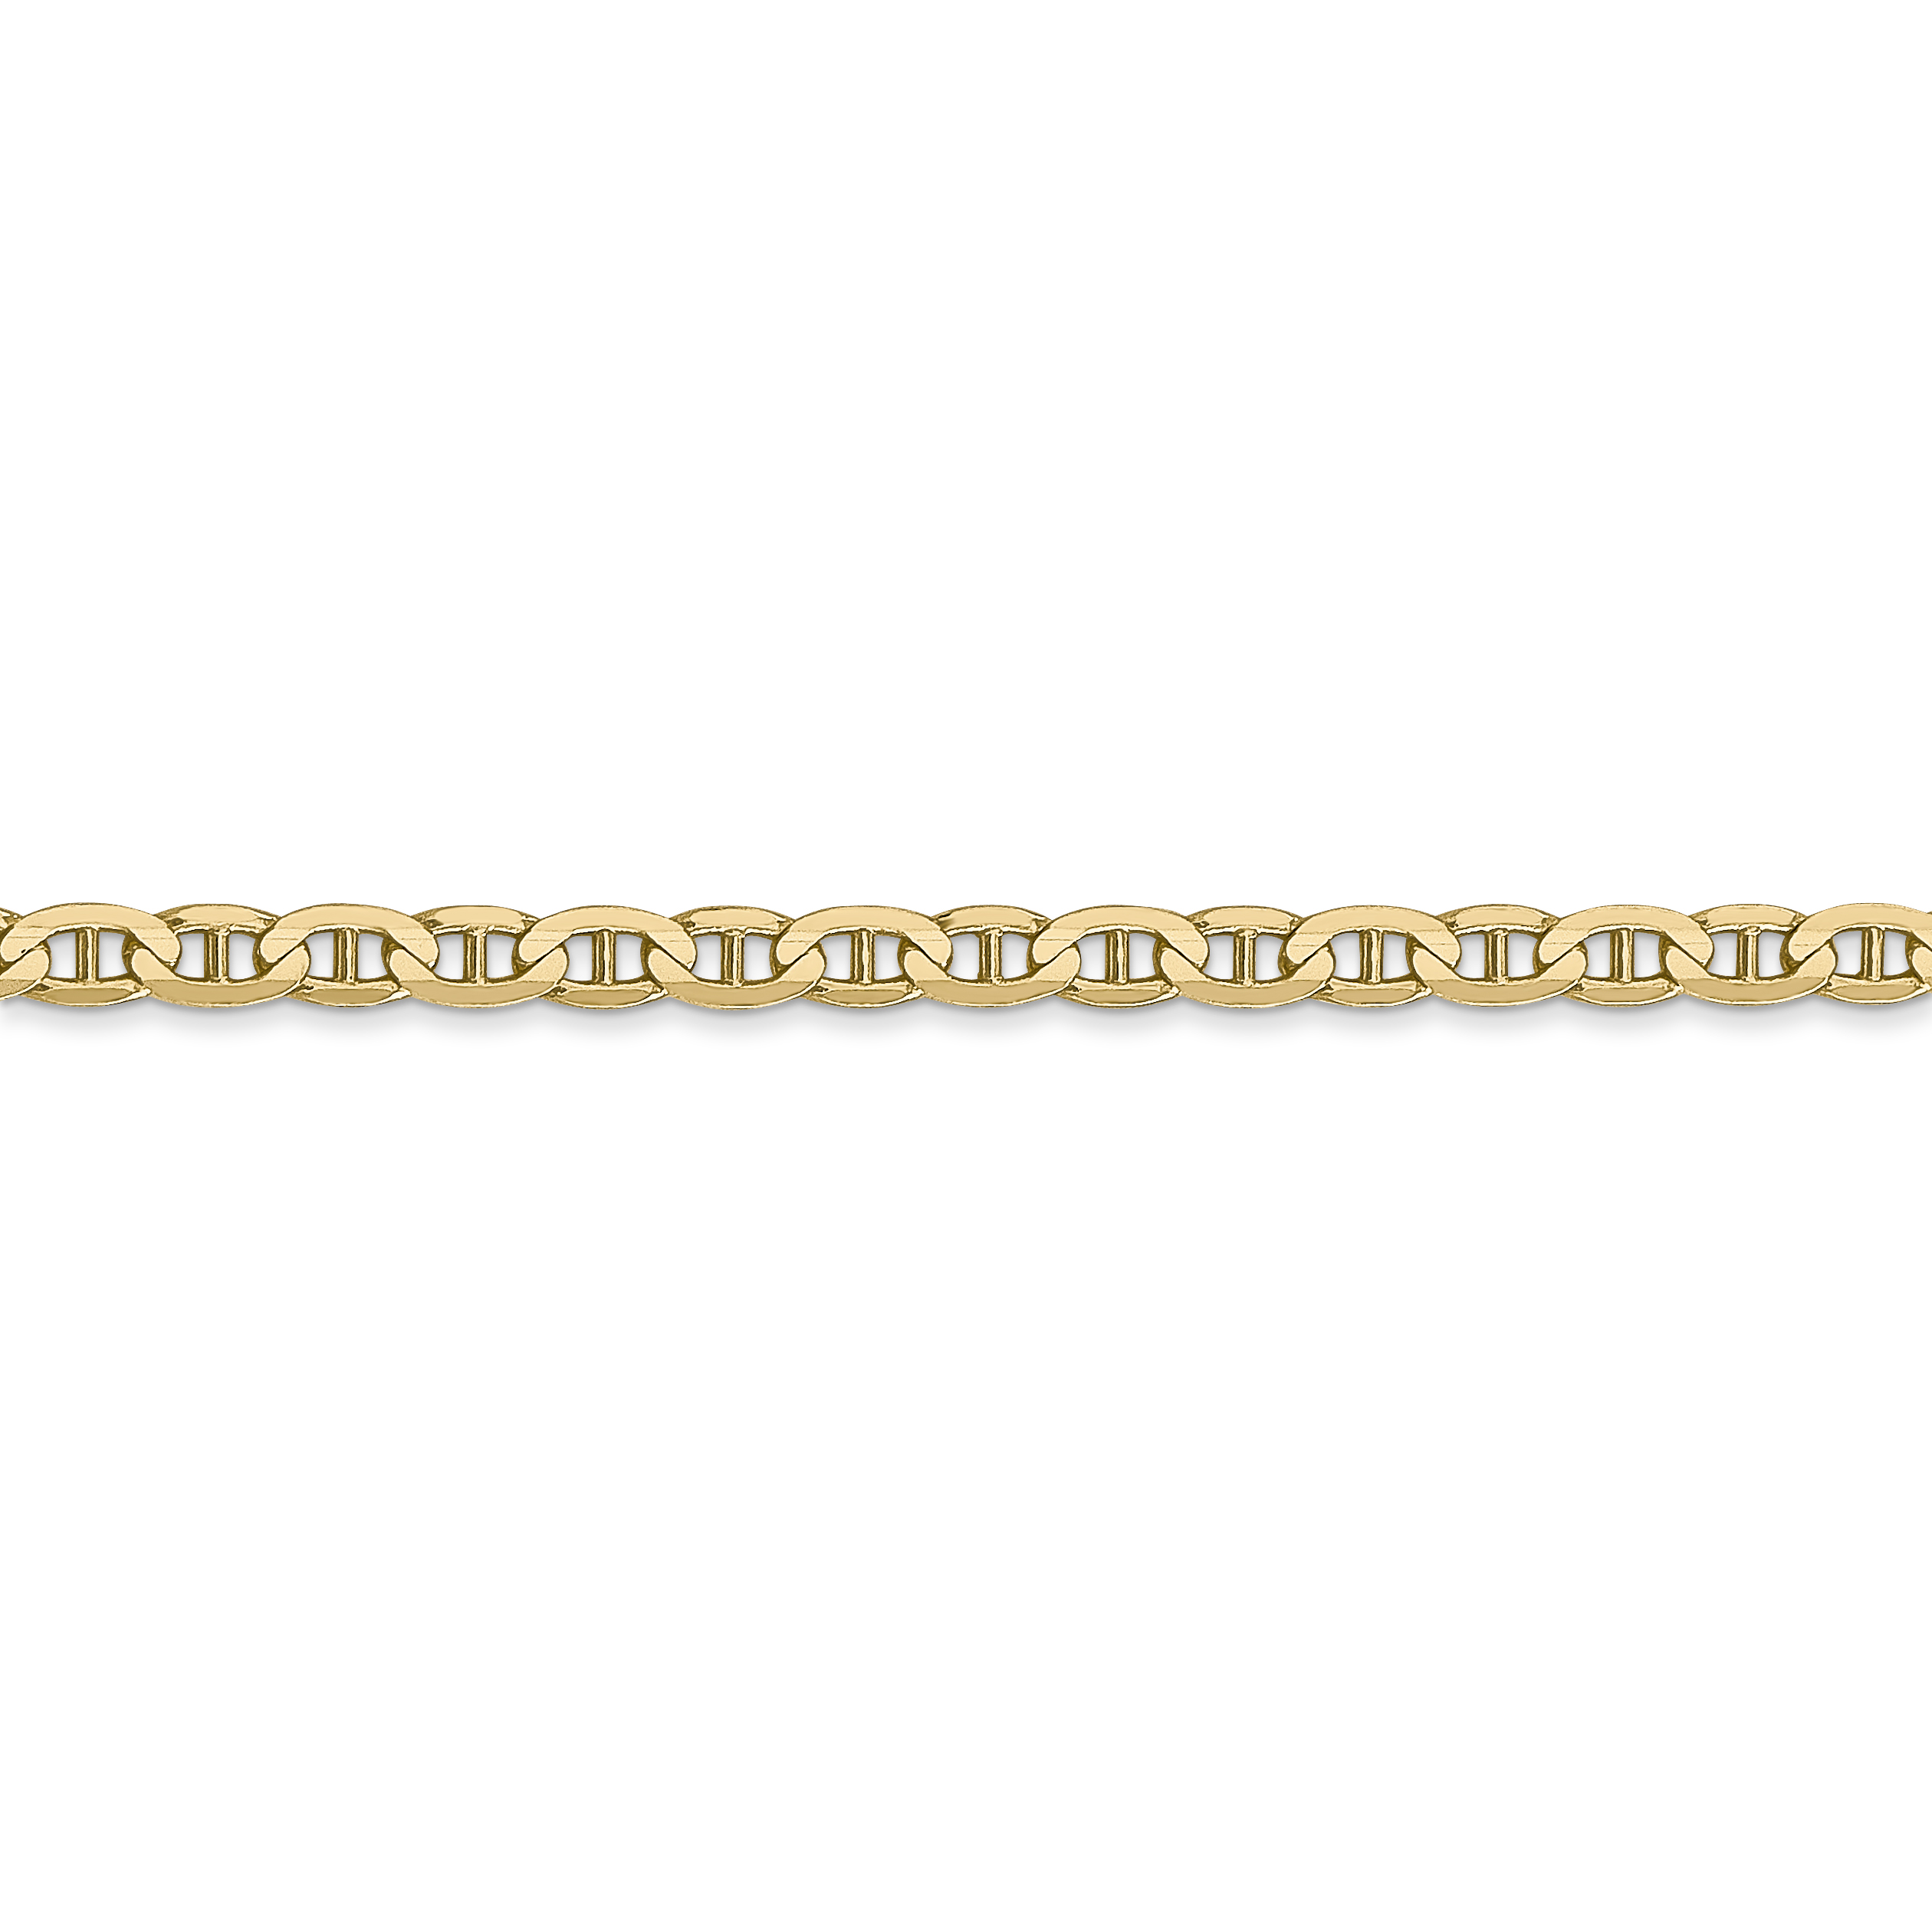 10K Yellow Gold 3mm Concave Anchor Chain - image 3 de 5